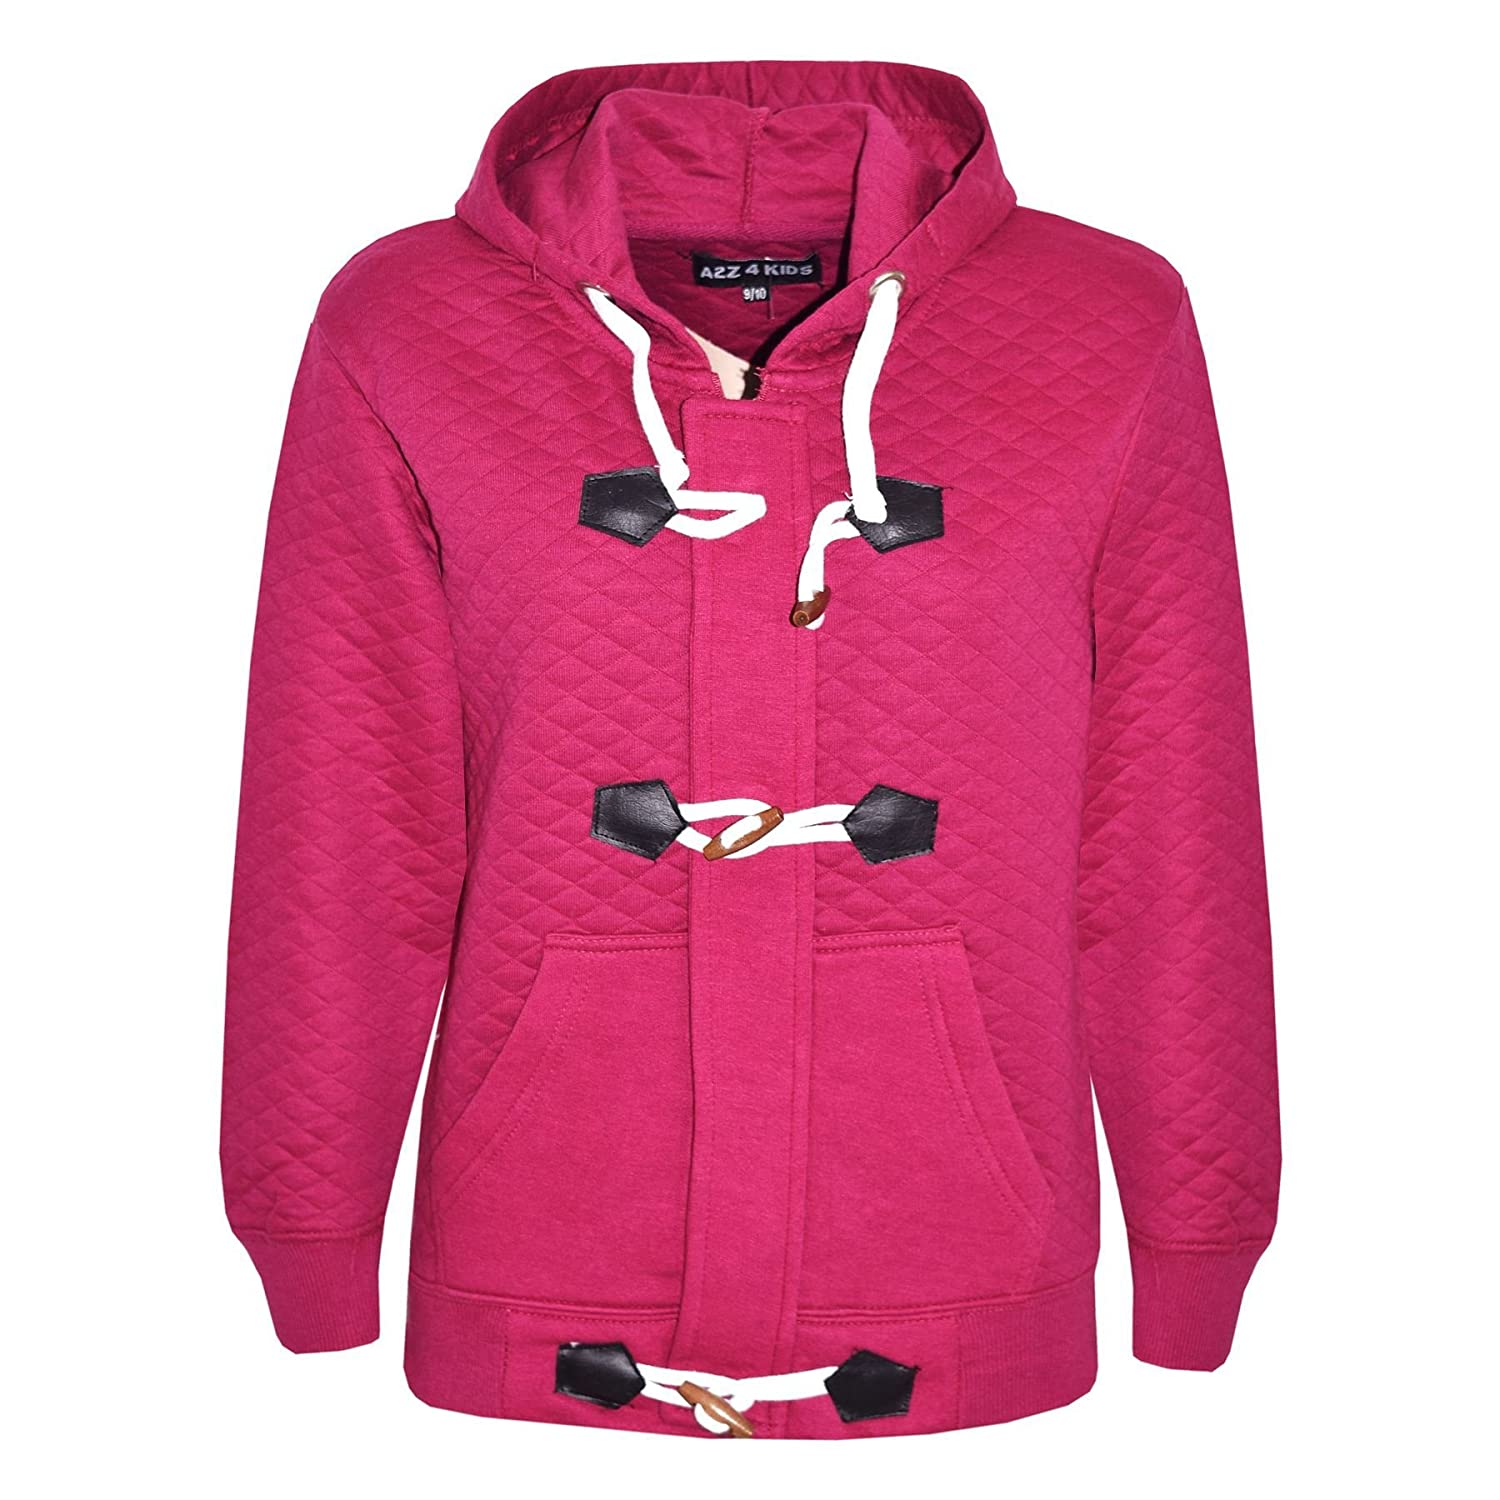 ca9ed270 GIRLS BOYS DUFFEL COAT KIDS QUILTED FLEECE HOODED JACKET HOODIE AGE 7-13  YEAR: Amazon.ca: Clothing & Accessories